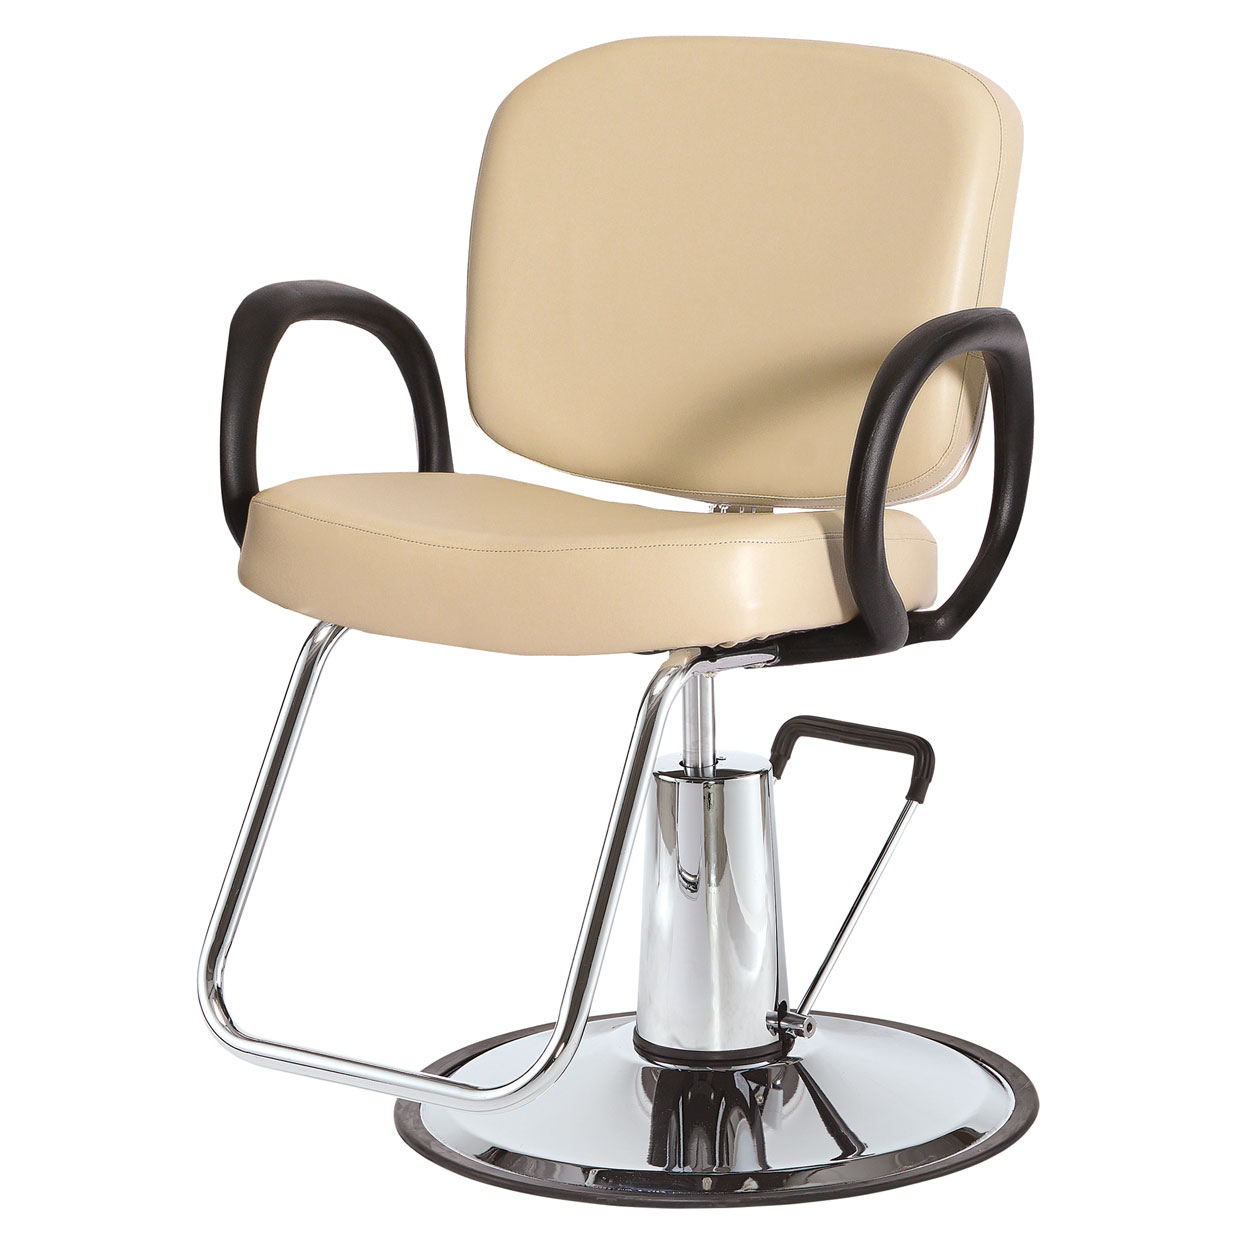 Pibbs 5406 Loop Hair Salon Styling Chair image size reference